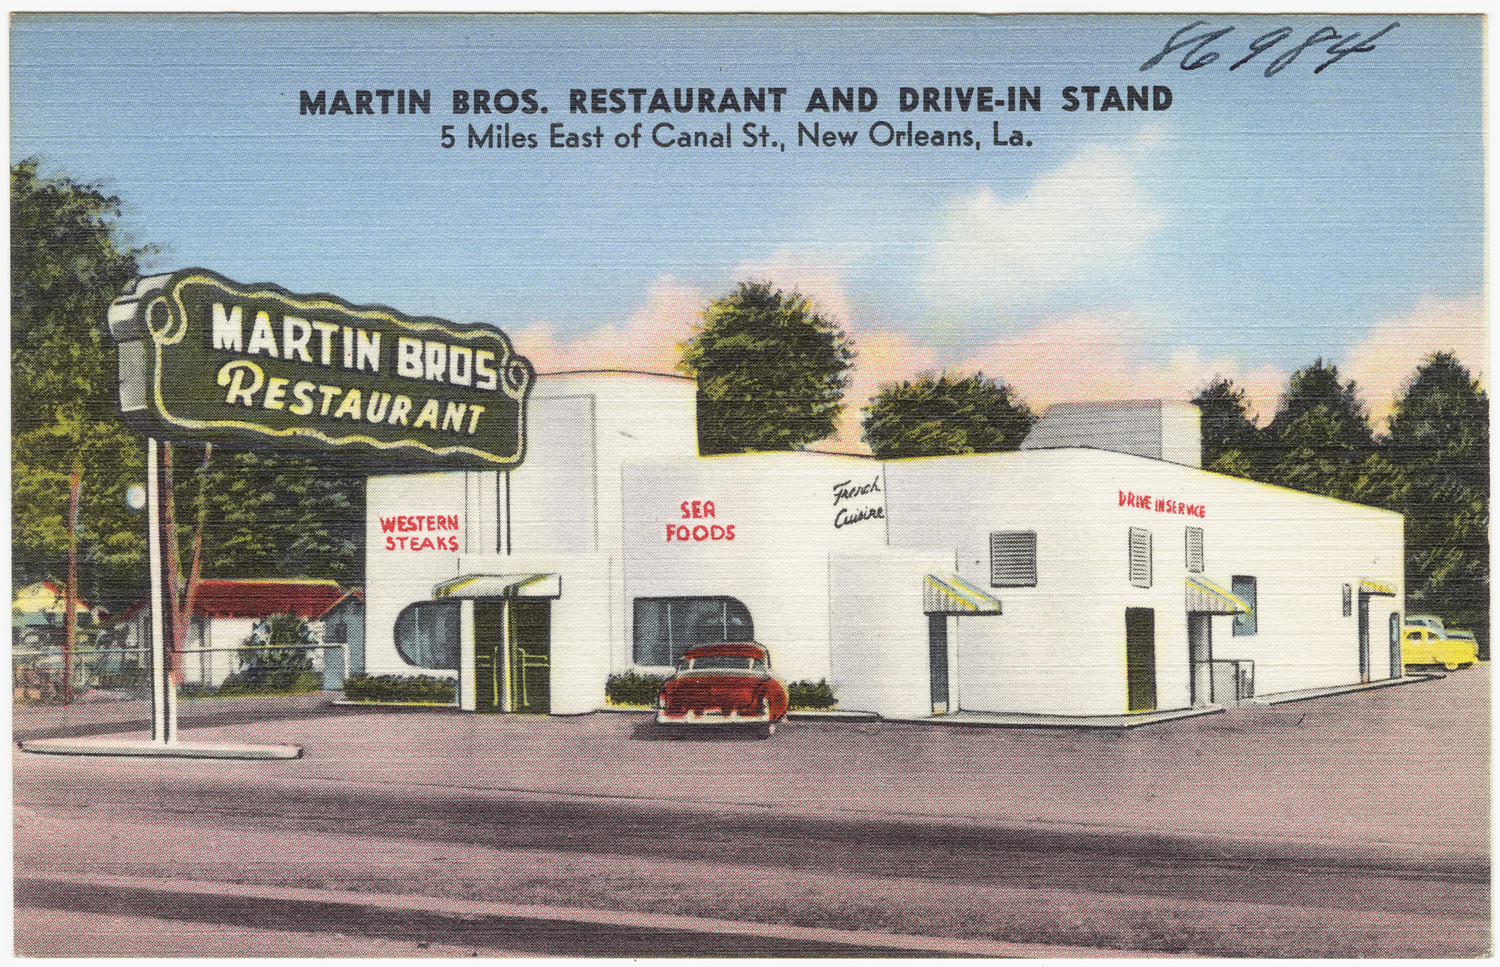 file martin bros restaurant and drive in stand 5 miles east of canal st new orleans la jpg. Black Bedroom Furniture Sets. Home Design Ideas